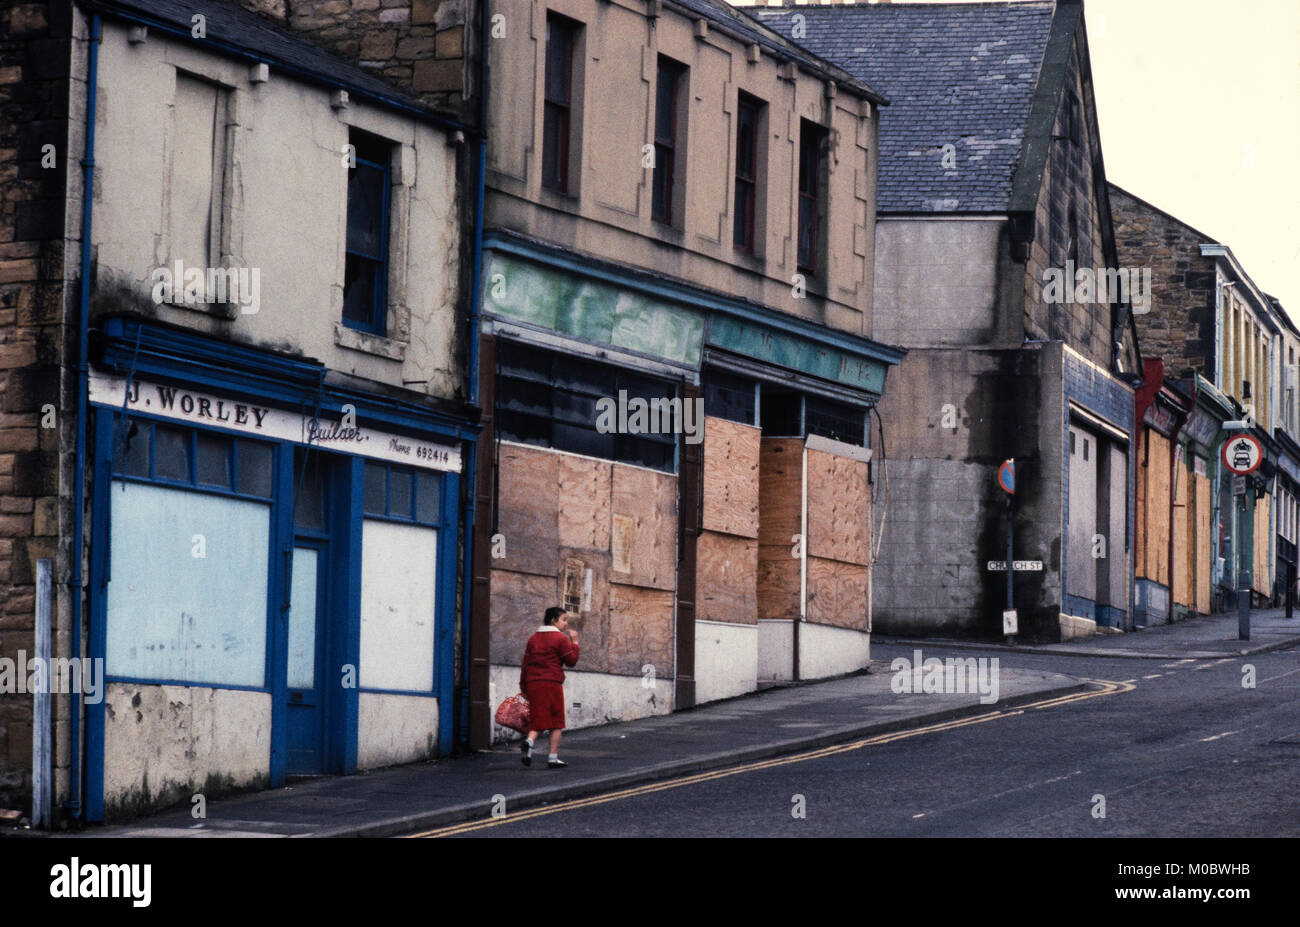 Gateshead, Tyne and Wear, northern England in 1985 Showing social problems and boarded up shops - Stock Image